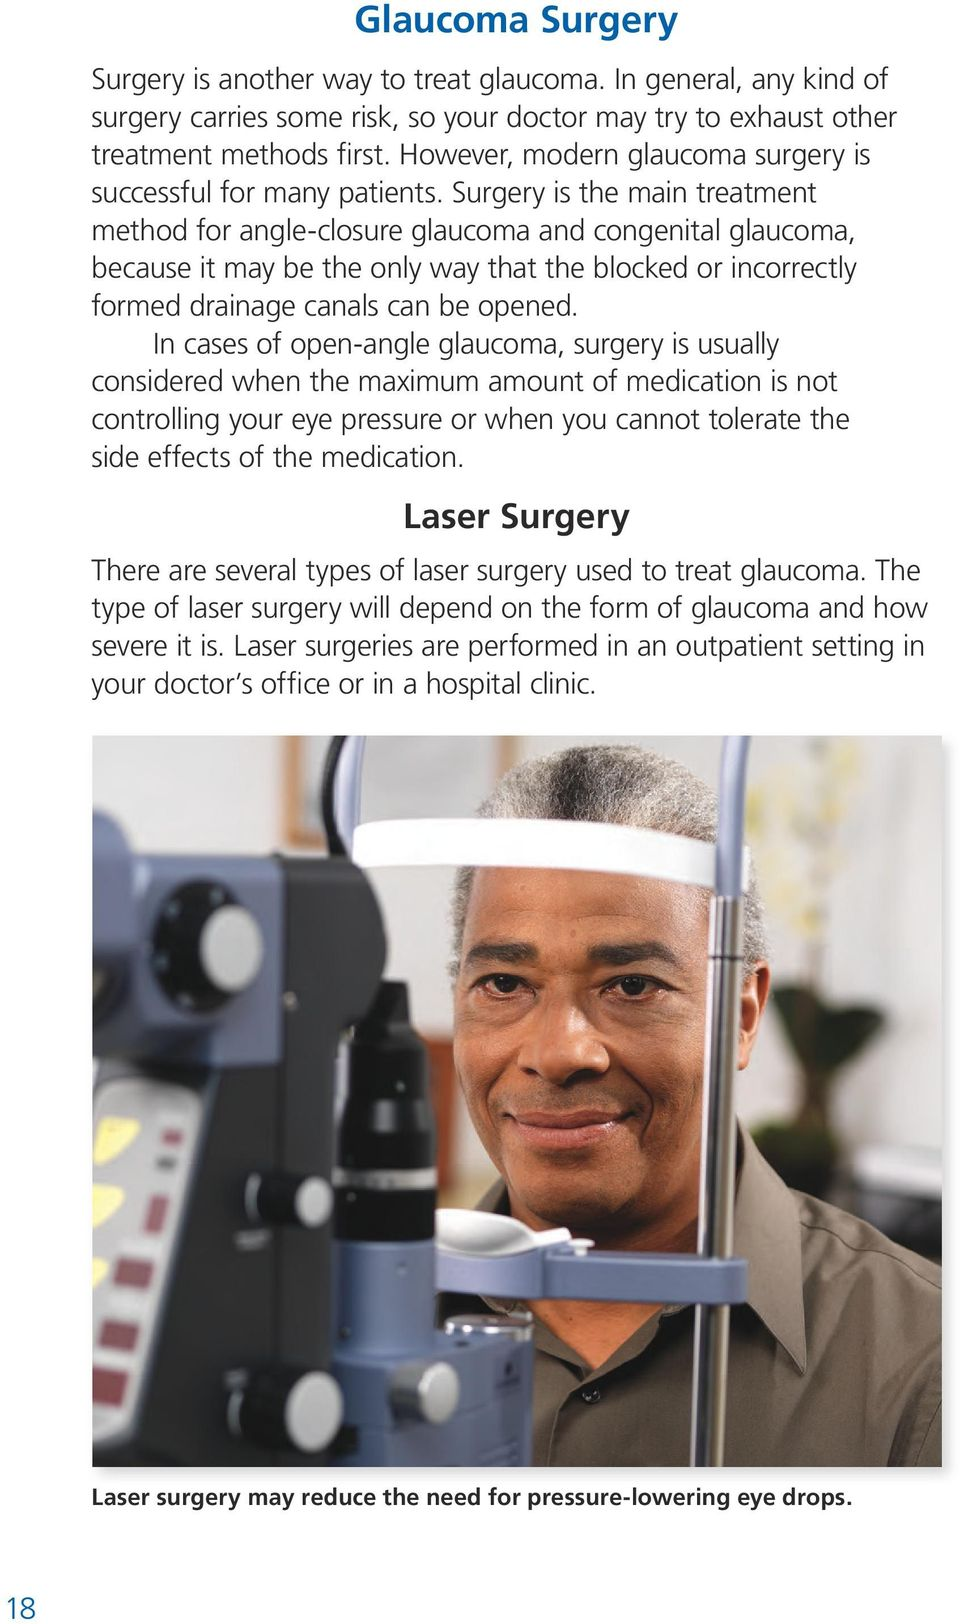 Surgery is the main treatment method for angle-closure glaucoma and congenital glaucoma, because it may be the only way that the blocked or incorrectly formed drainage canals can be opened.